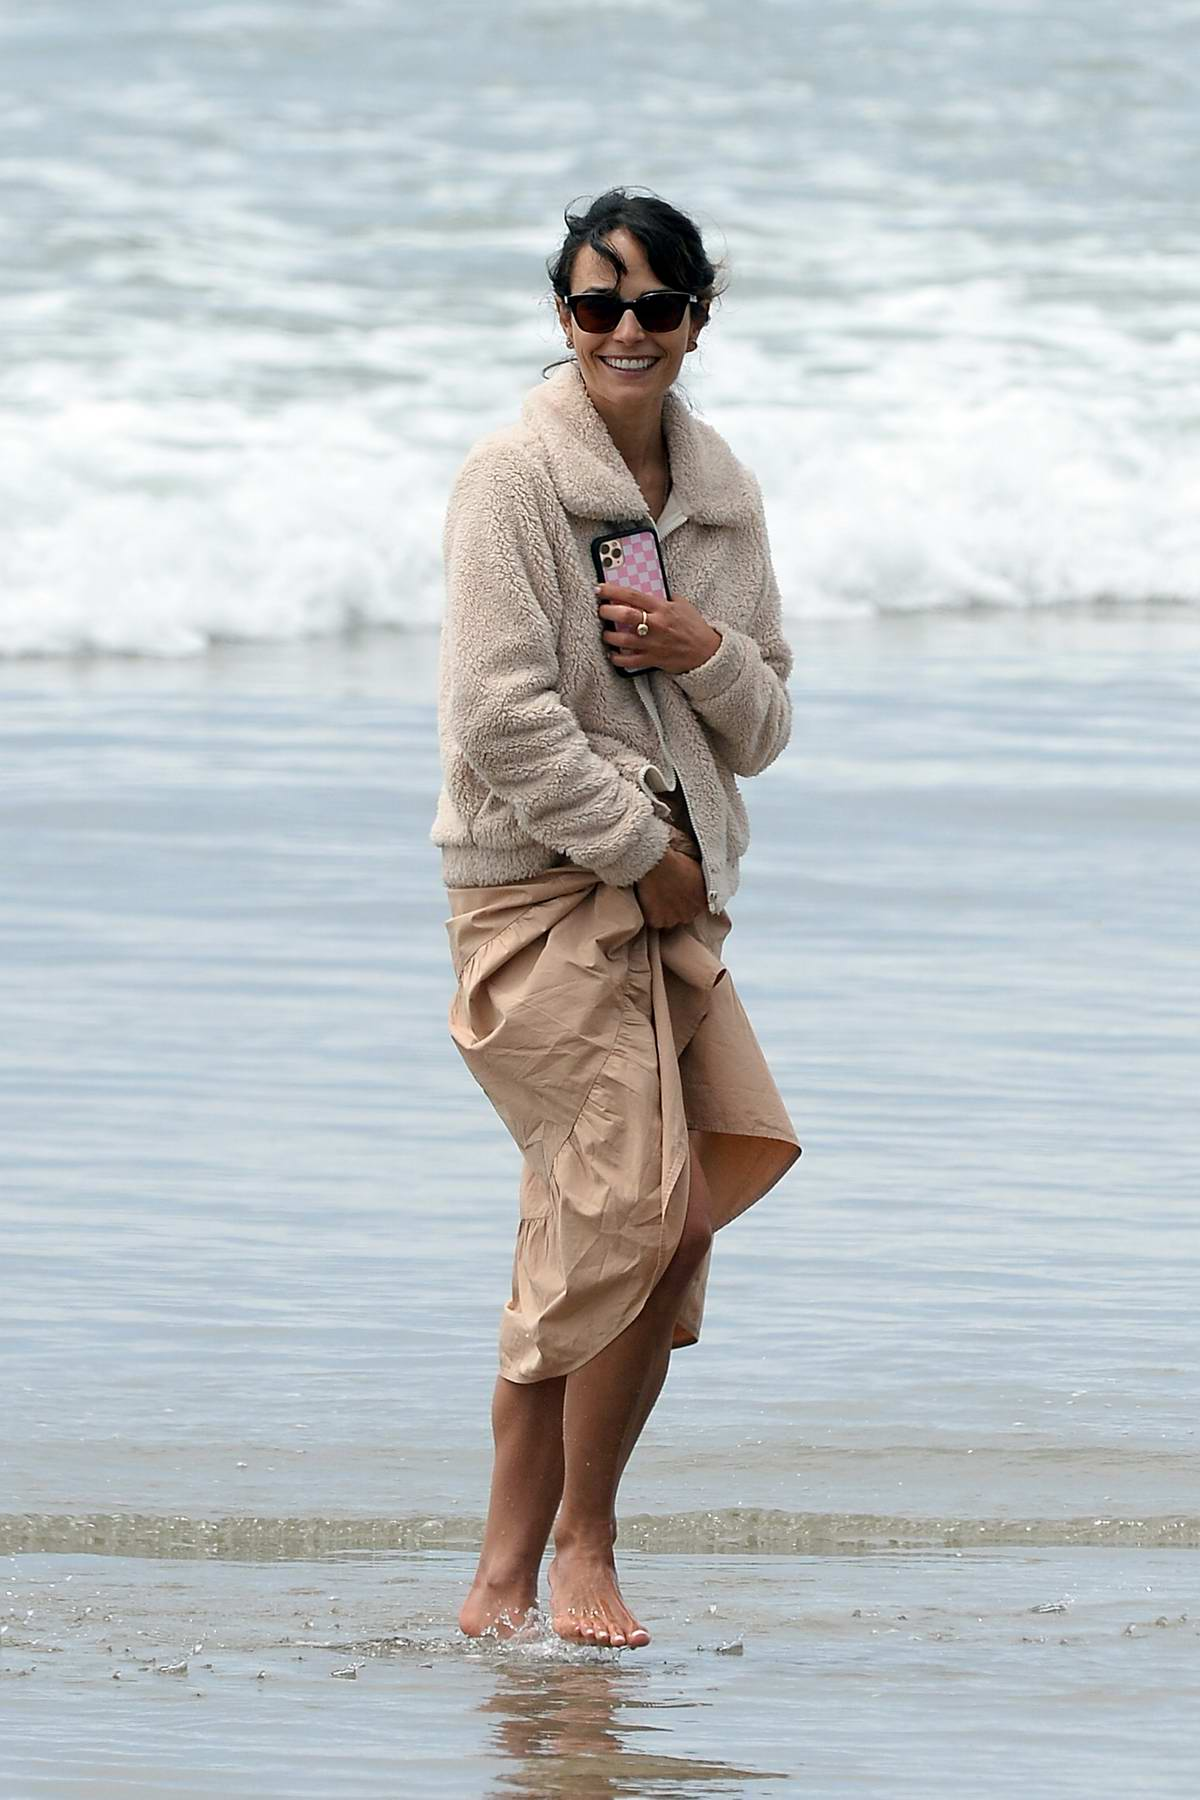 Jordana Brewster is all smiles as she enjoys a stroll on the beach in Malibu, California